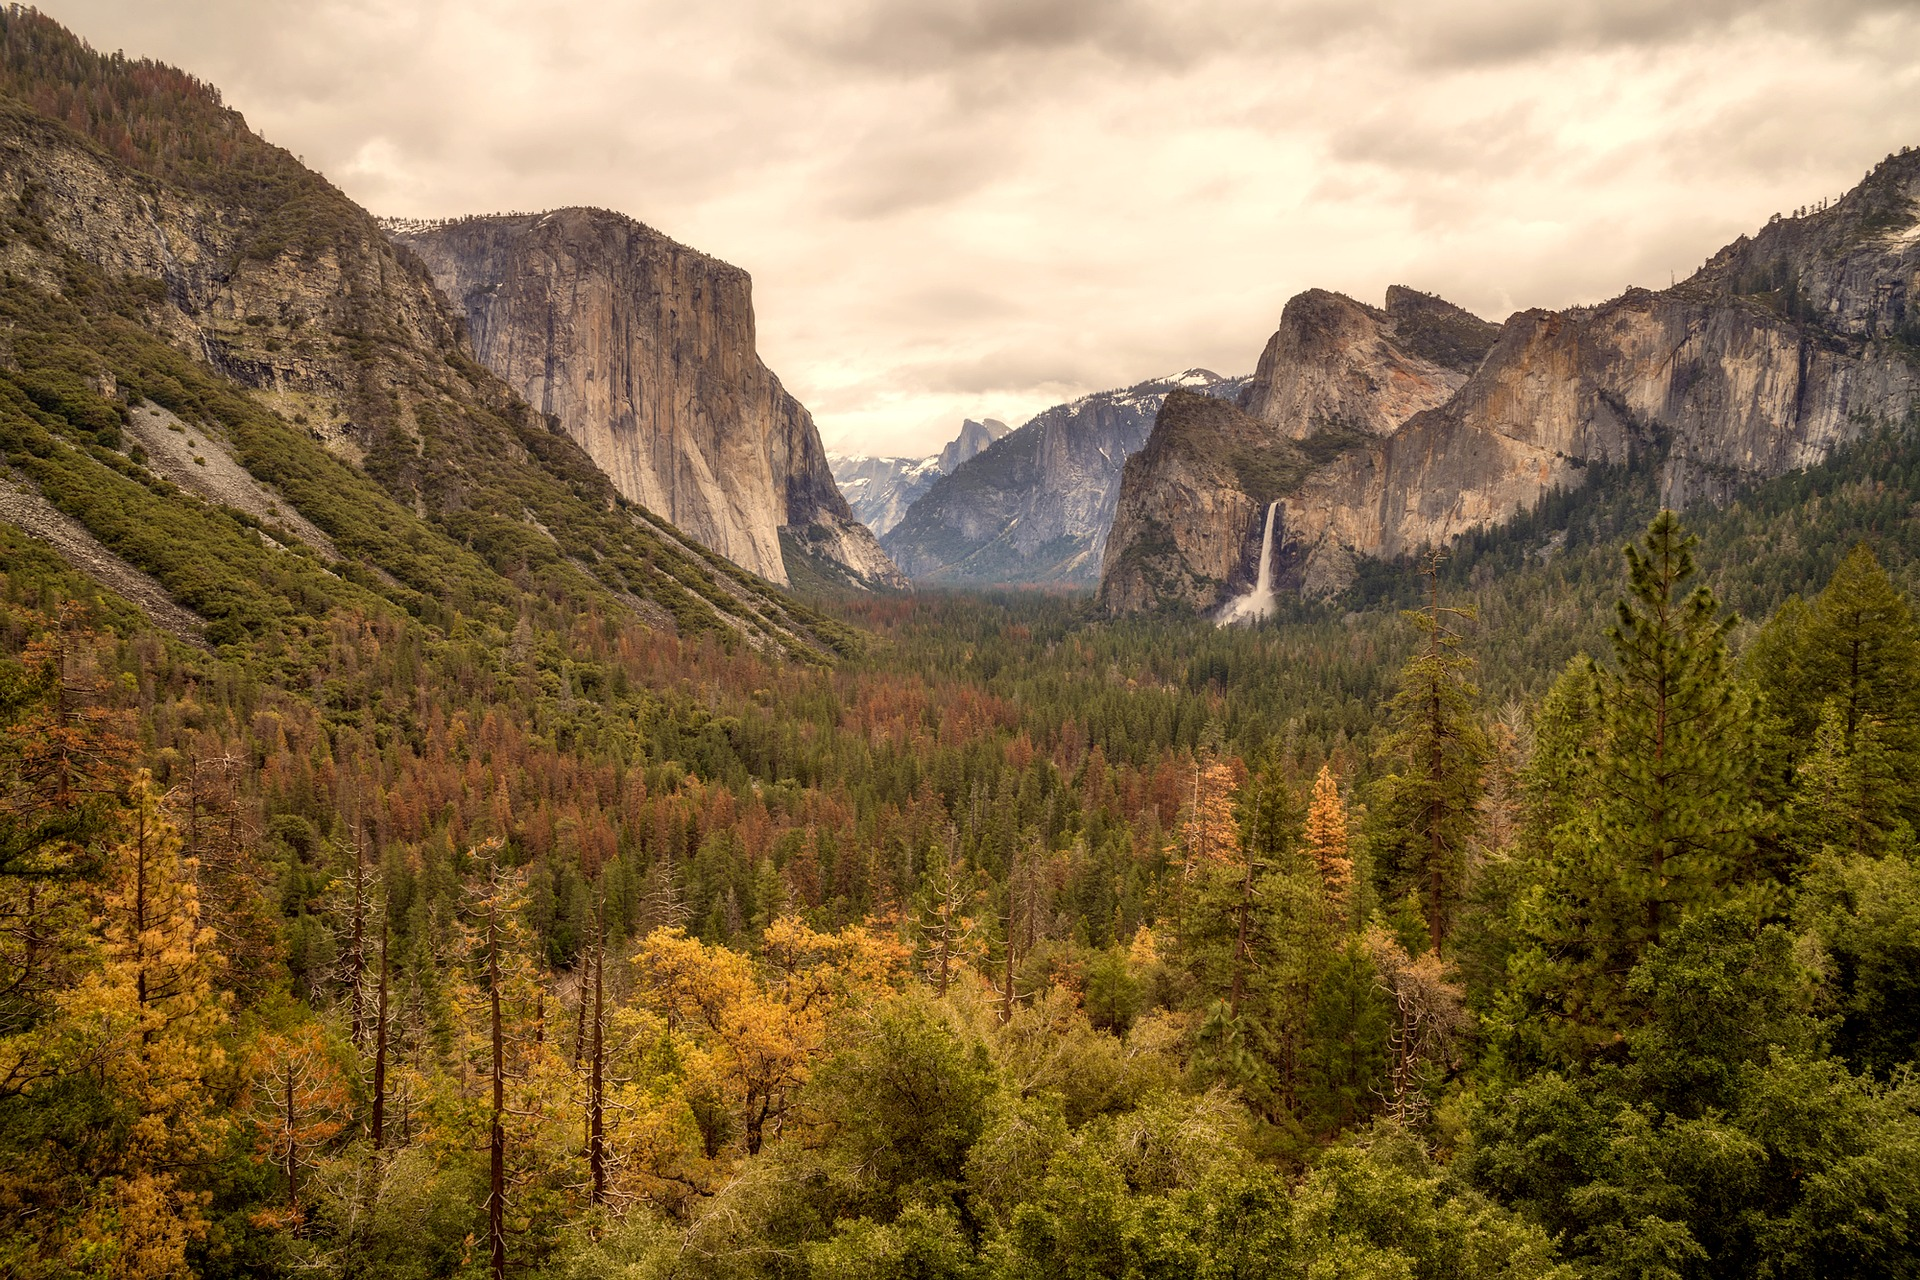 Yosemite National Park in California, USA